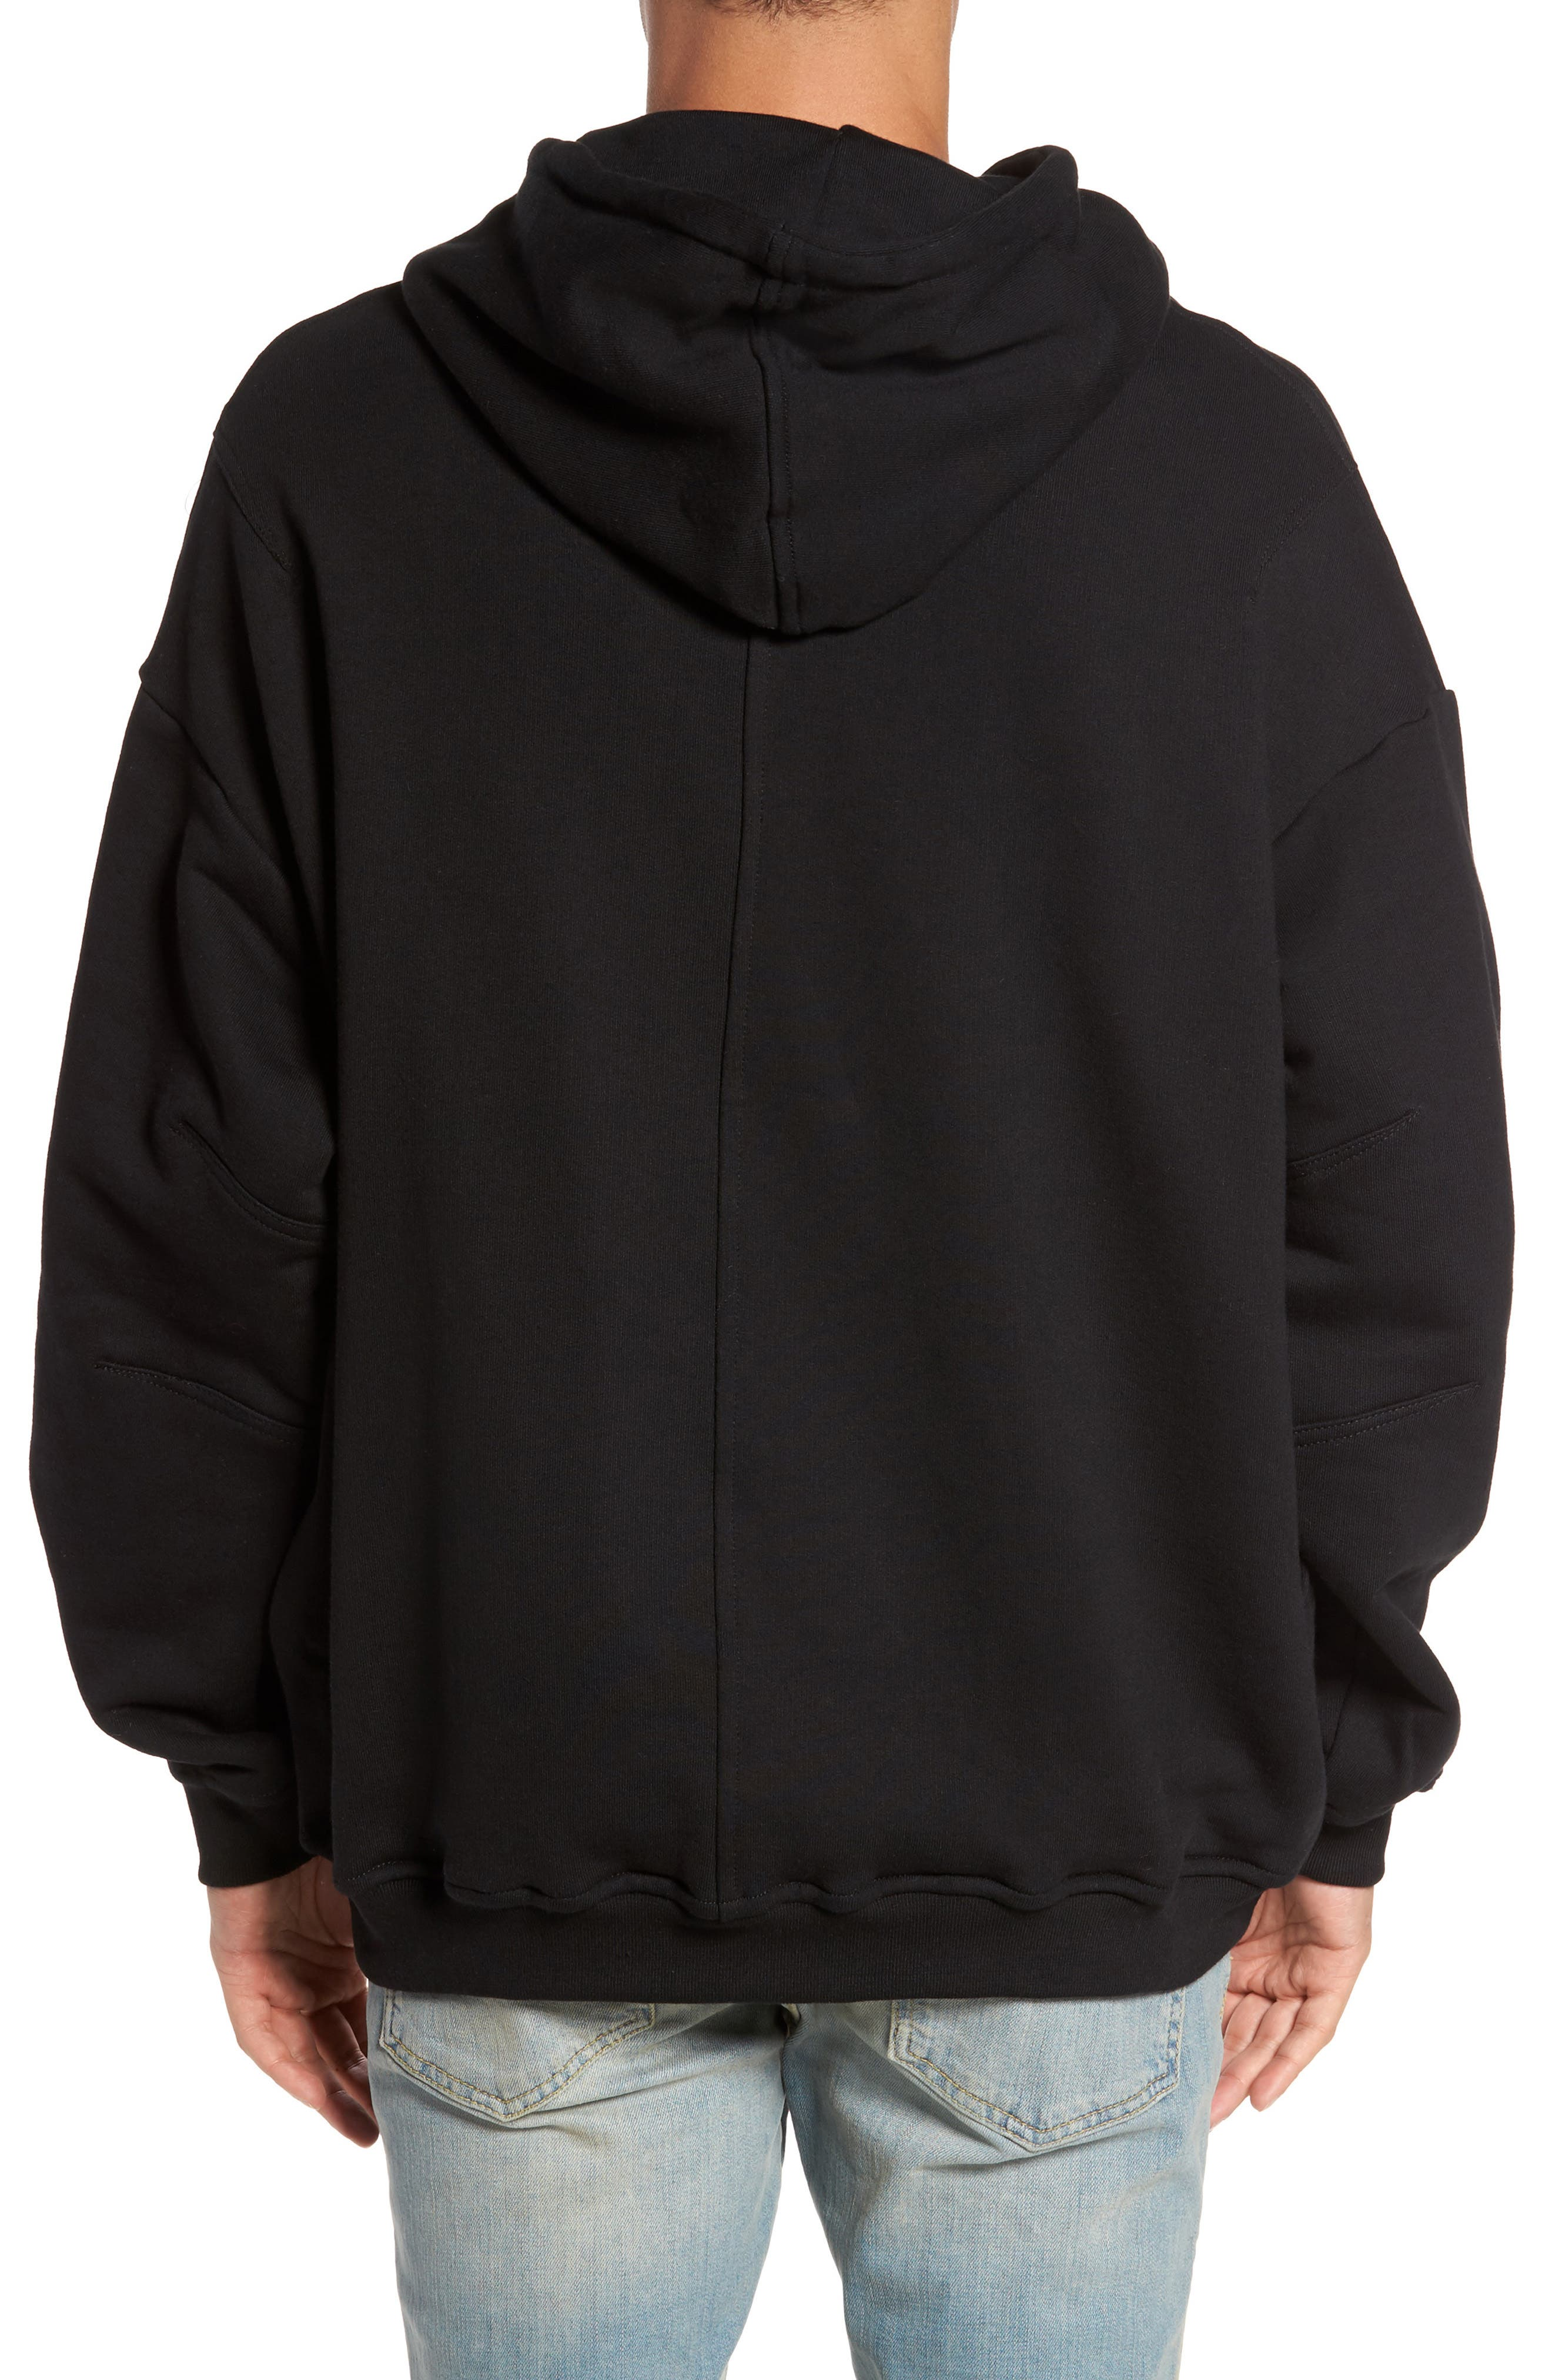 Relaxed Fit Hoodie,                             Alternate thumbnail 2, color,                             Black